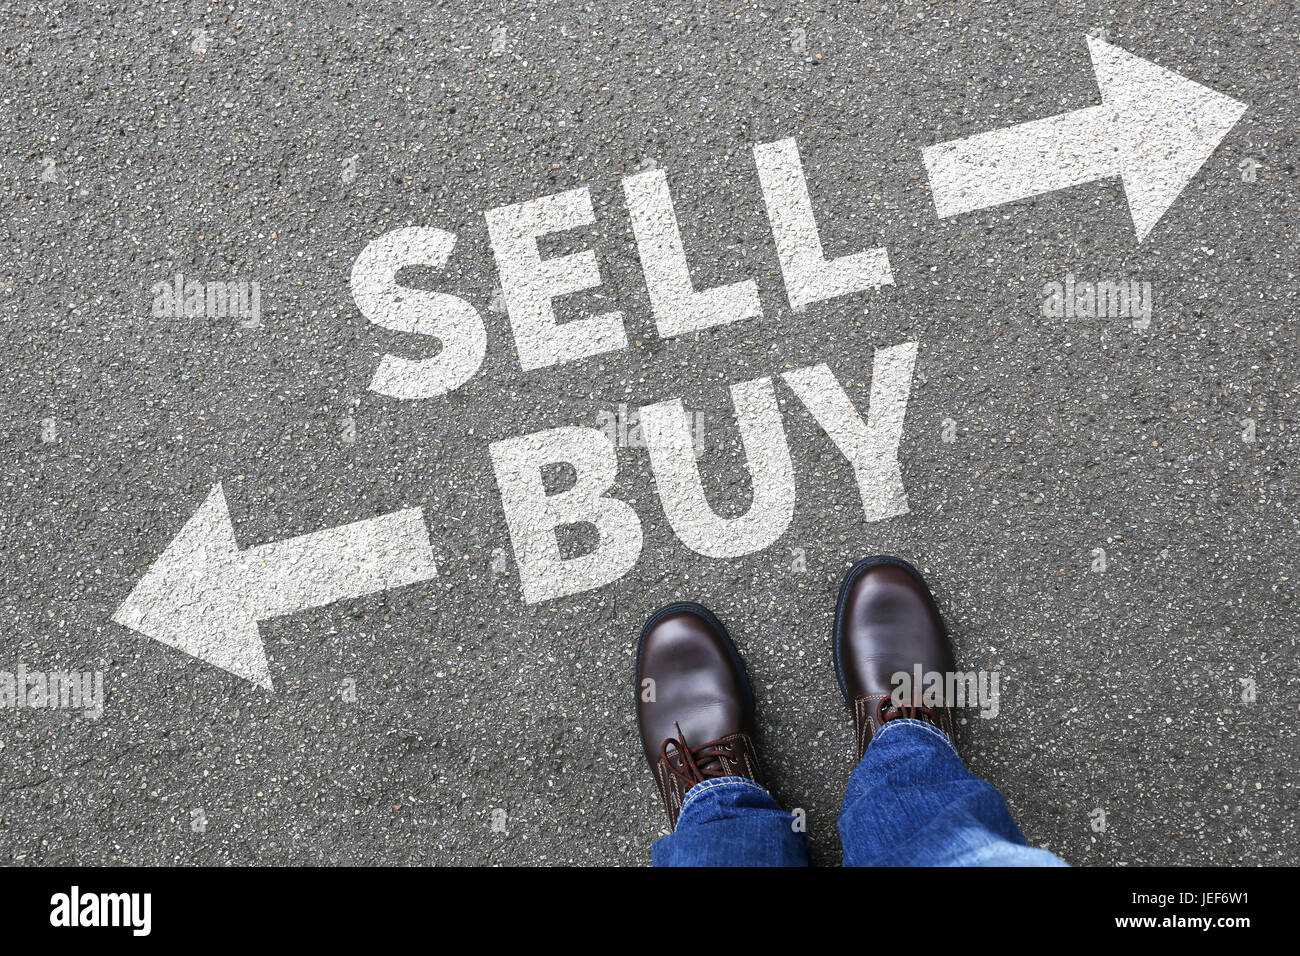 Sell buy selling buying goods trading stock exchange banking business concept import - Stock Image